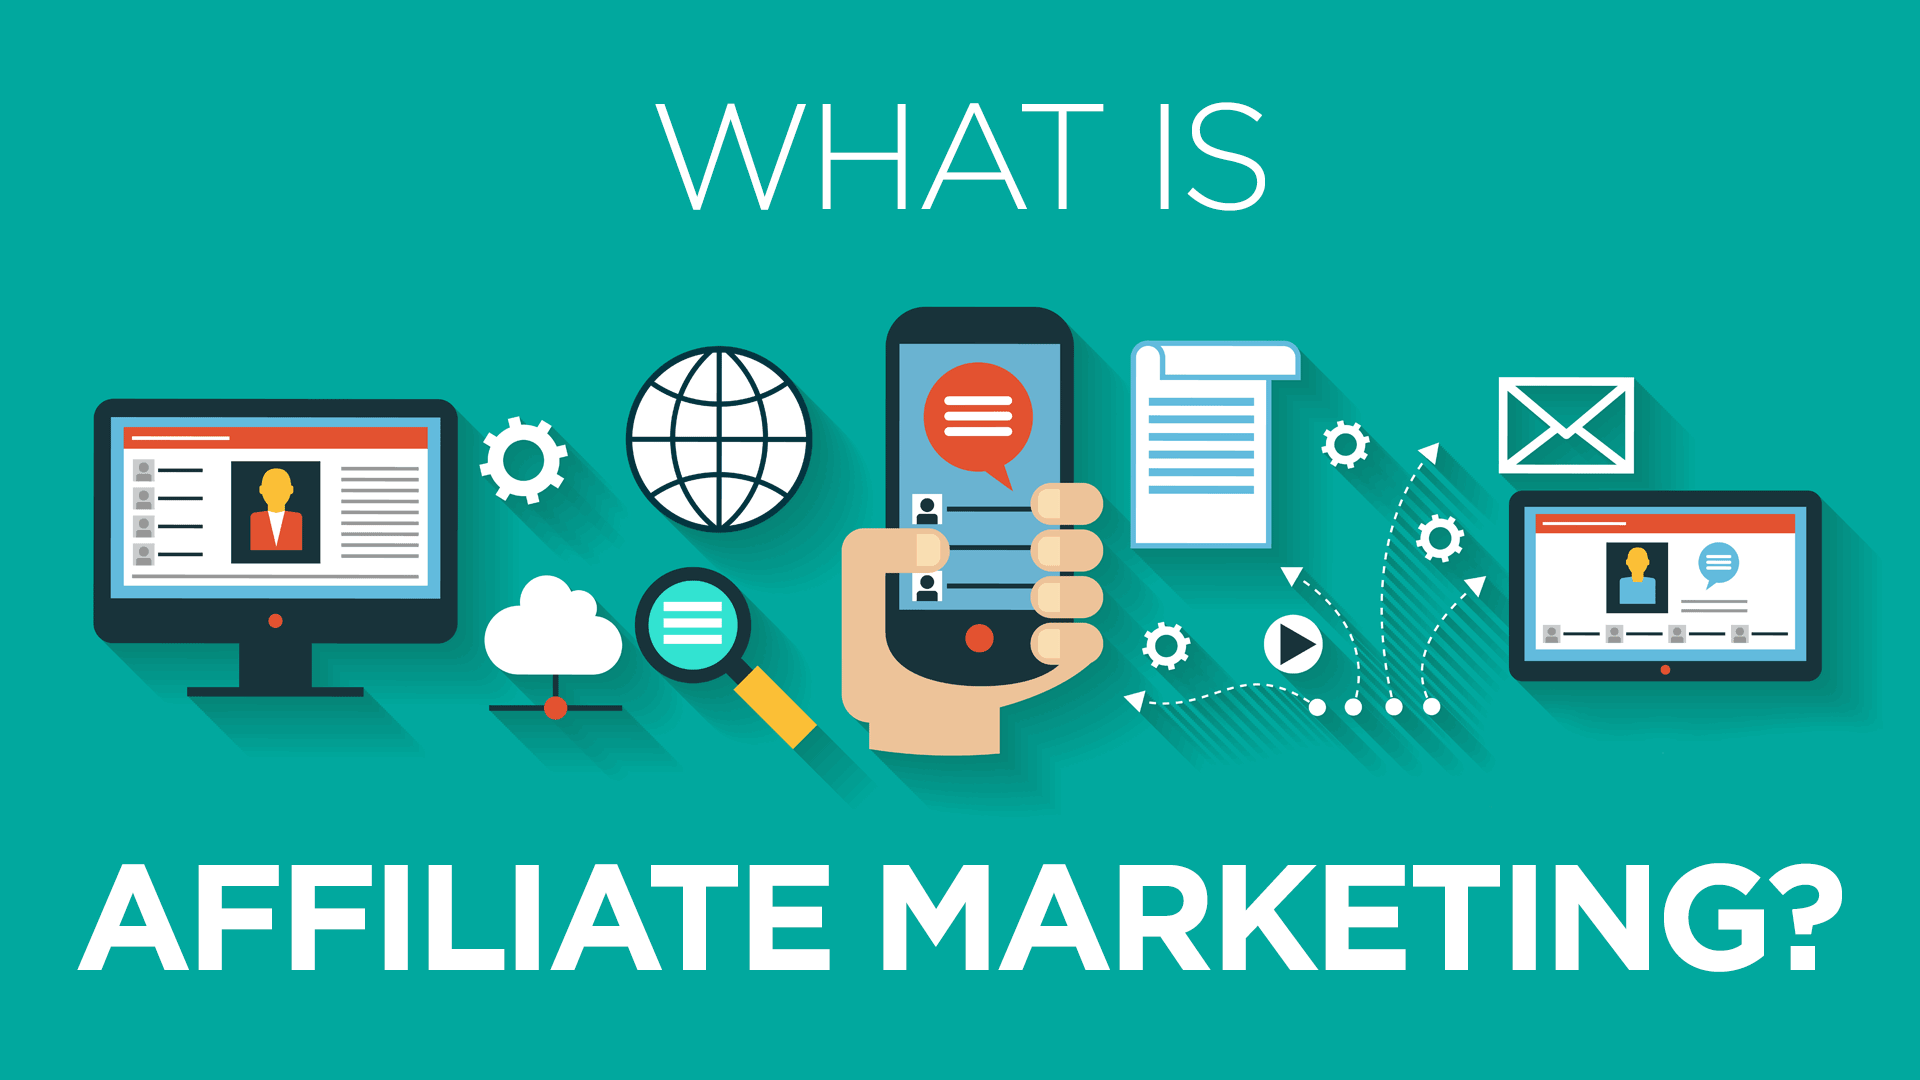 Affiliate marketing for ecommerce sites: 6 Ways to Increase Ecommerce Sales